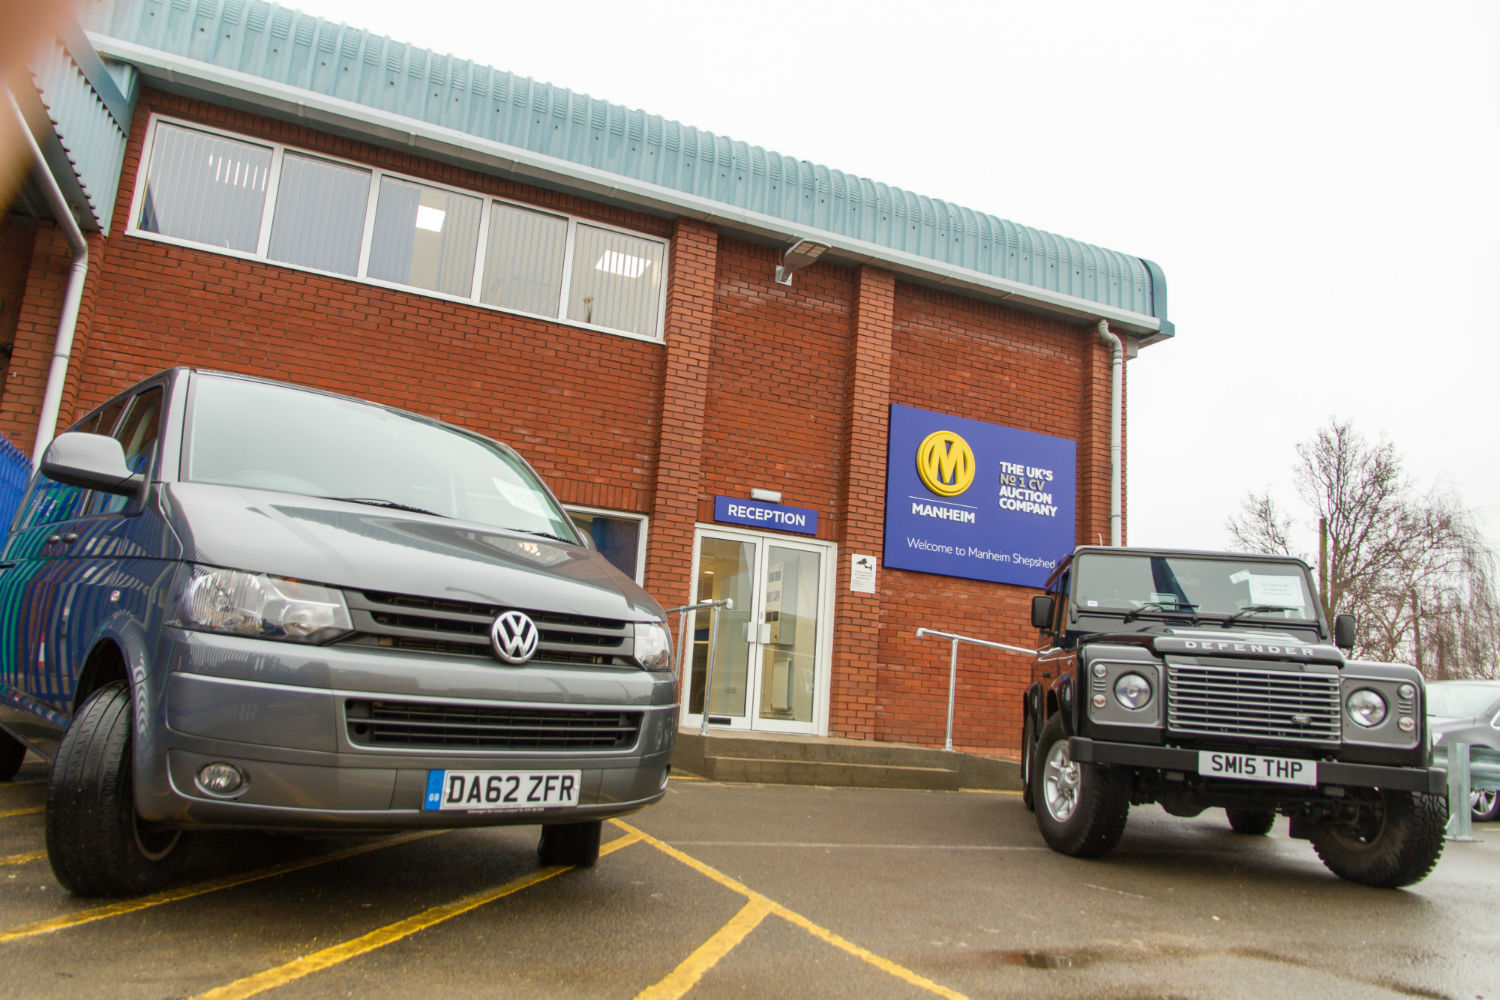 Manheim commercial vehicle auction centre in Shepshed